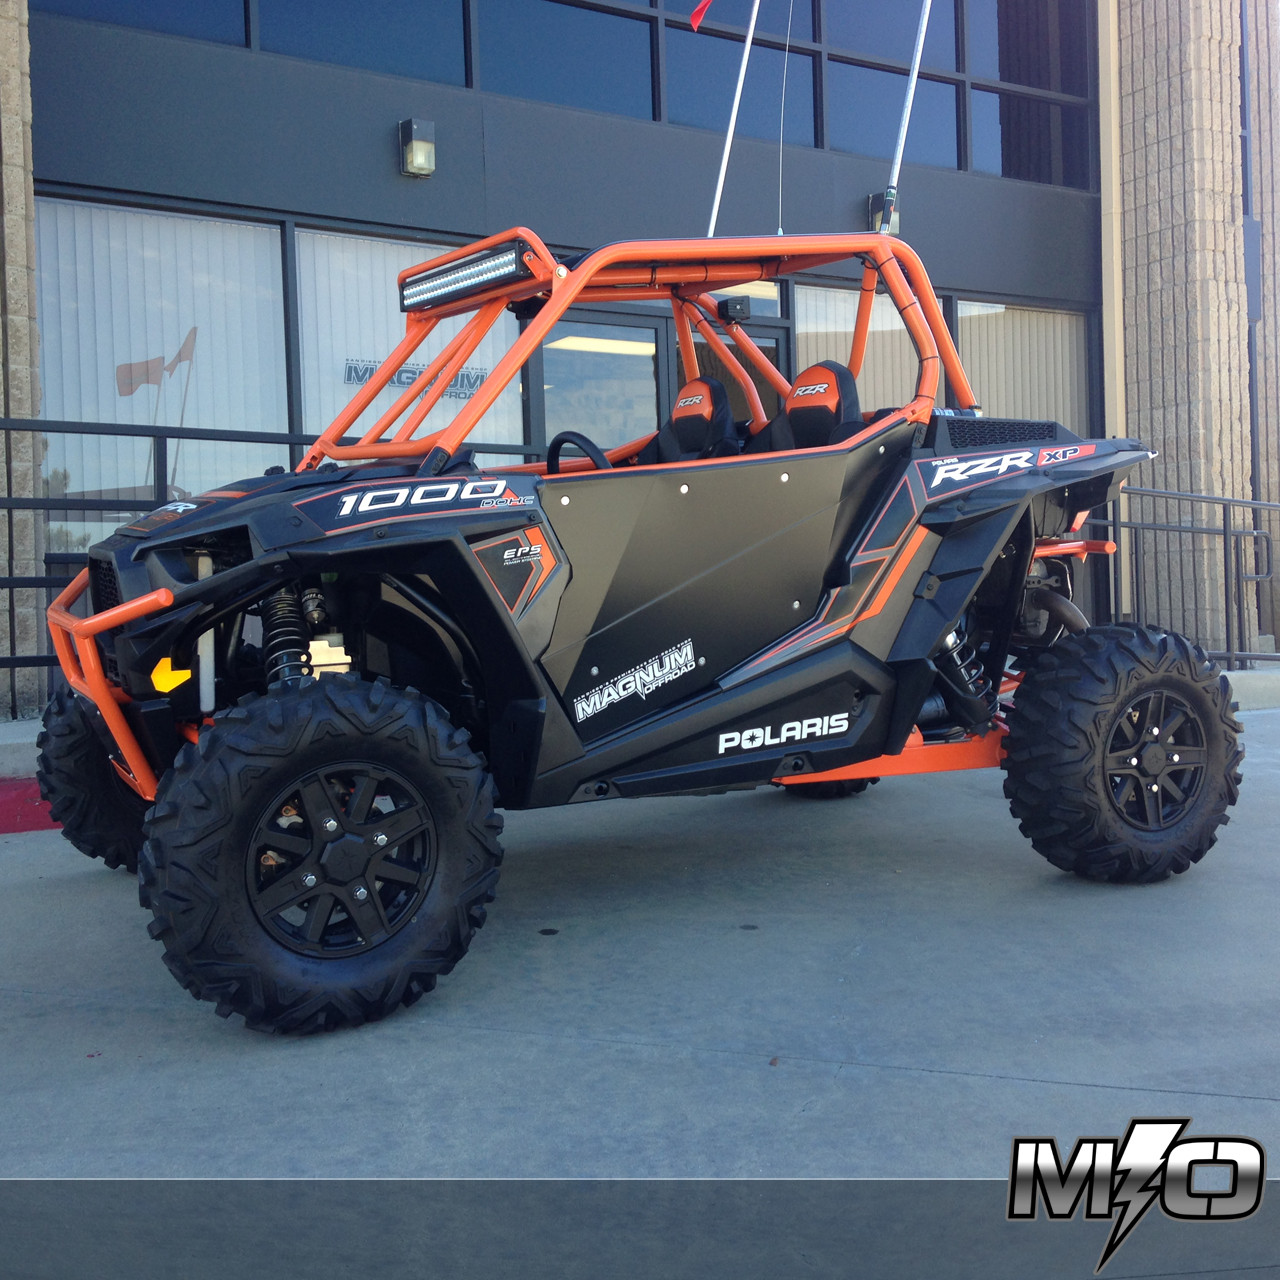 Polaris Rzr 1000 Turbo >> Polaris RZR XP 1000: Feather Lite Roll Cage System - Magnum Offroad